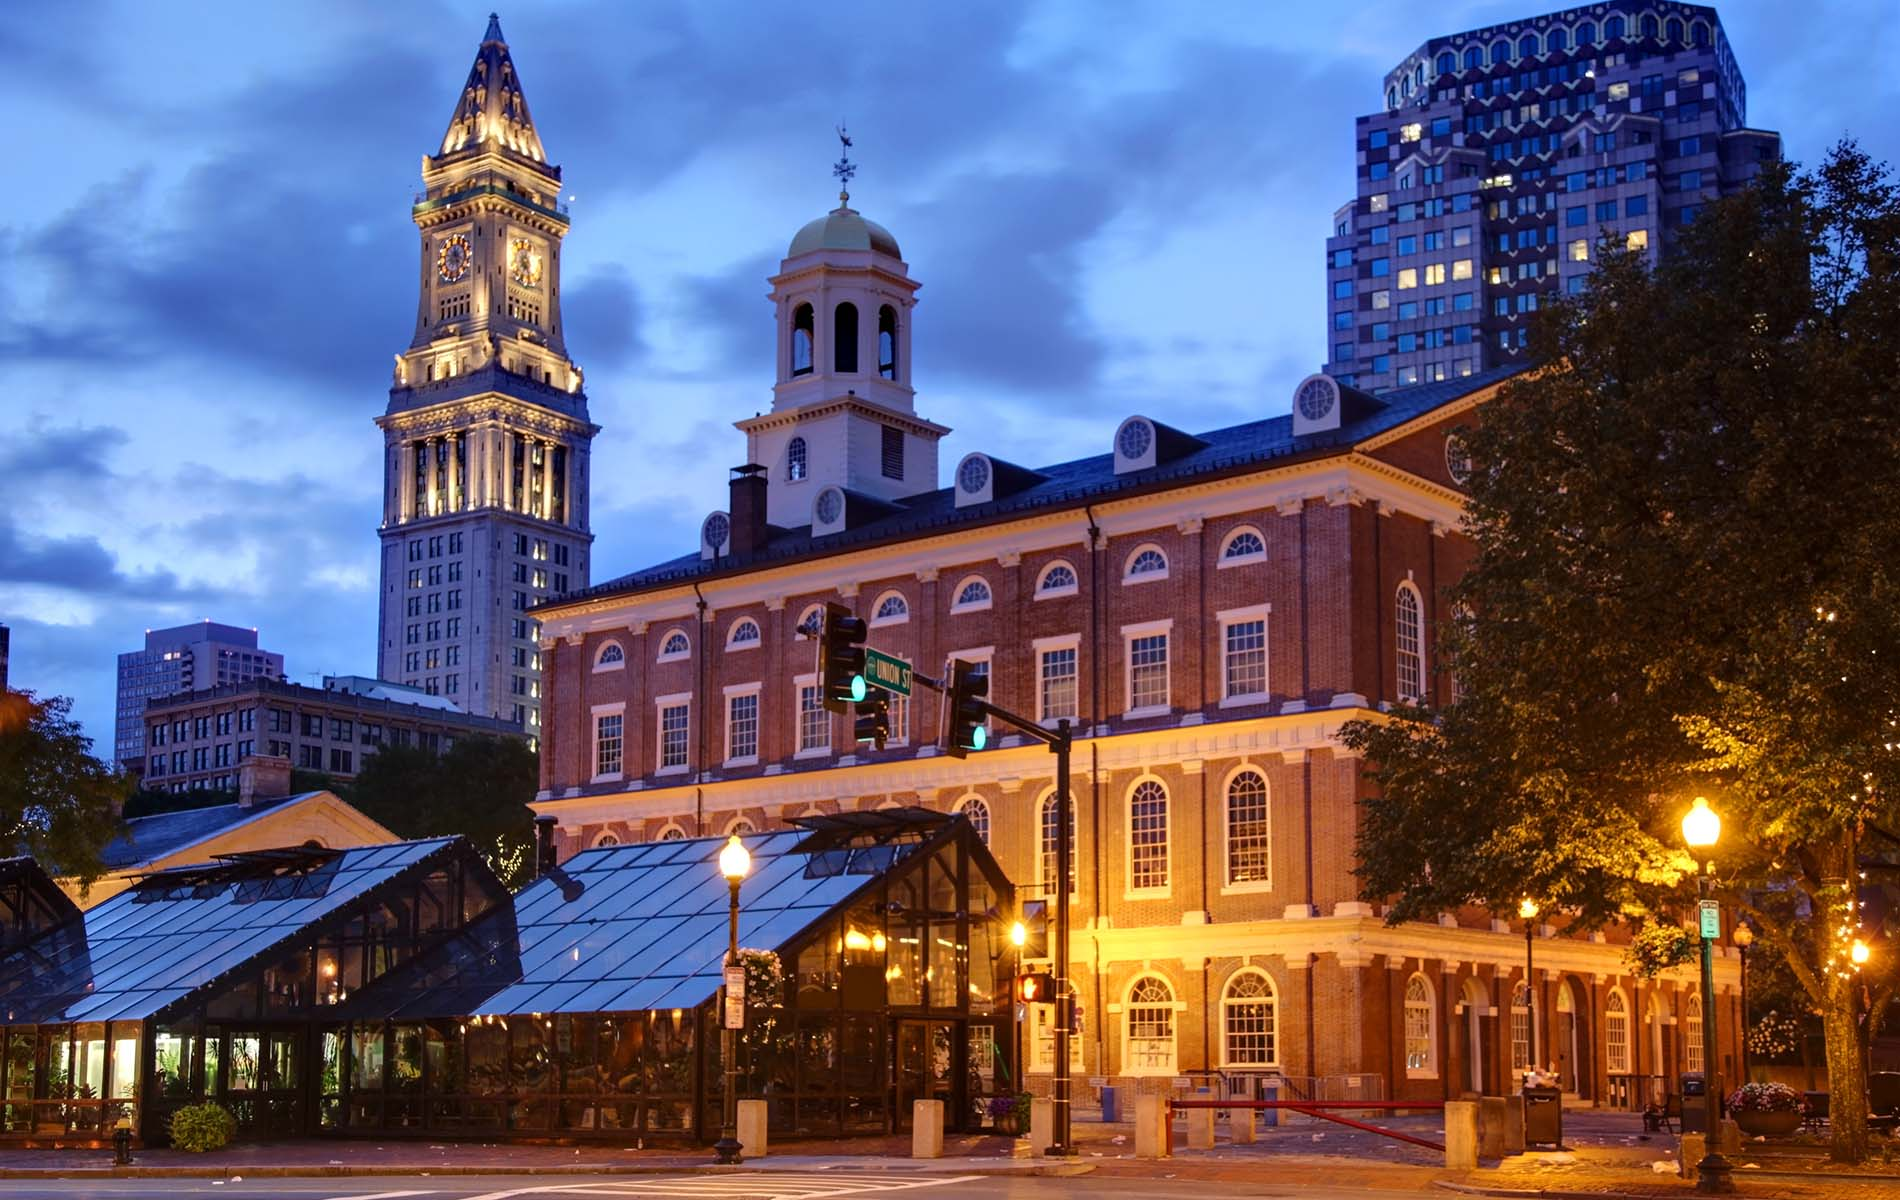 Night time sky with view of two illuminated towers on right and red brick building to left of quincy market